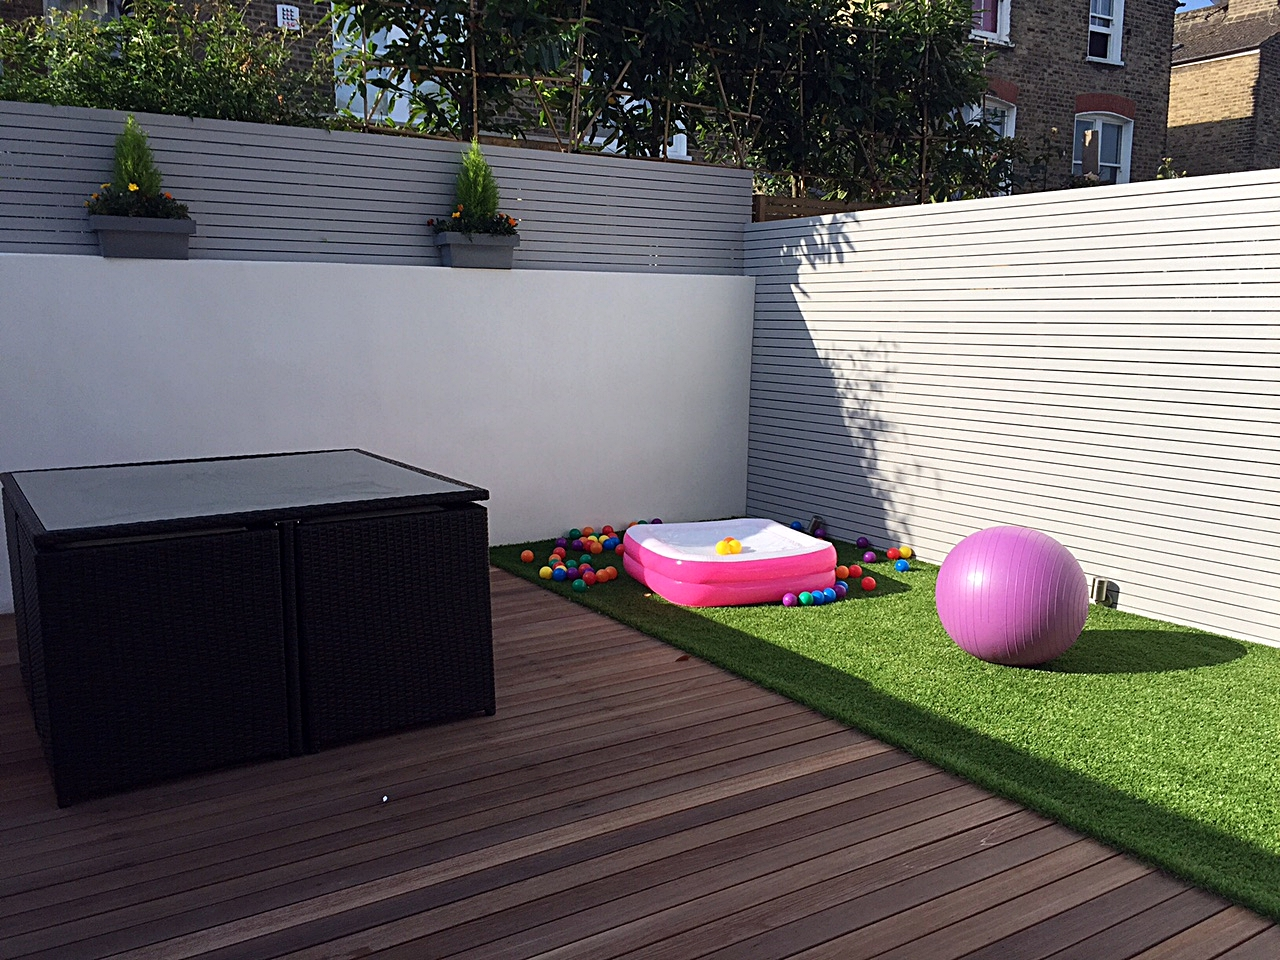 low maintenance garden design hardwood deck artificial grass render painted wall hardwood painted screen trellis fence balham clapham battersea dulwich